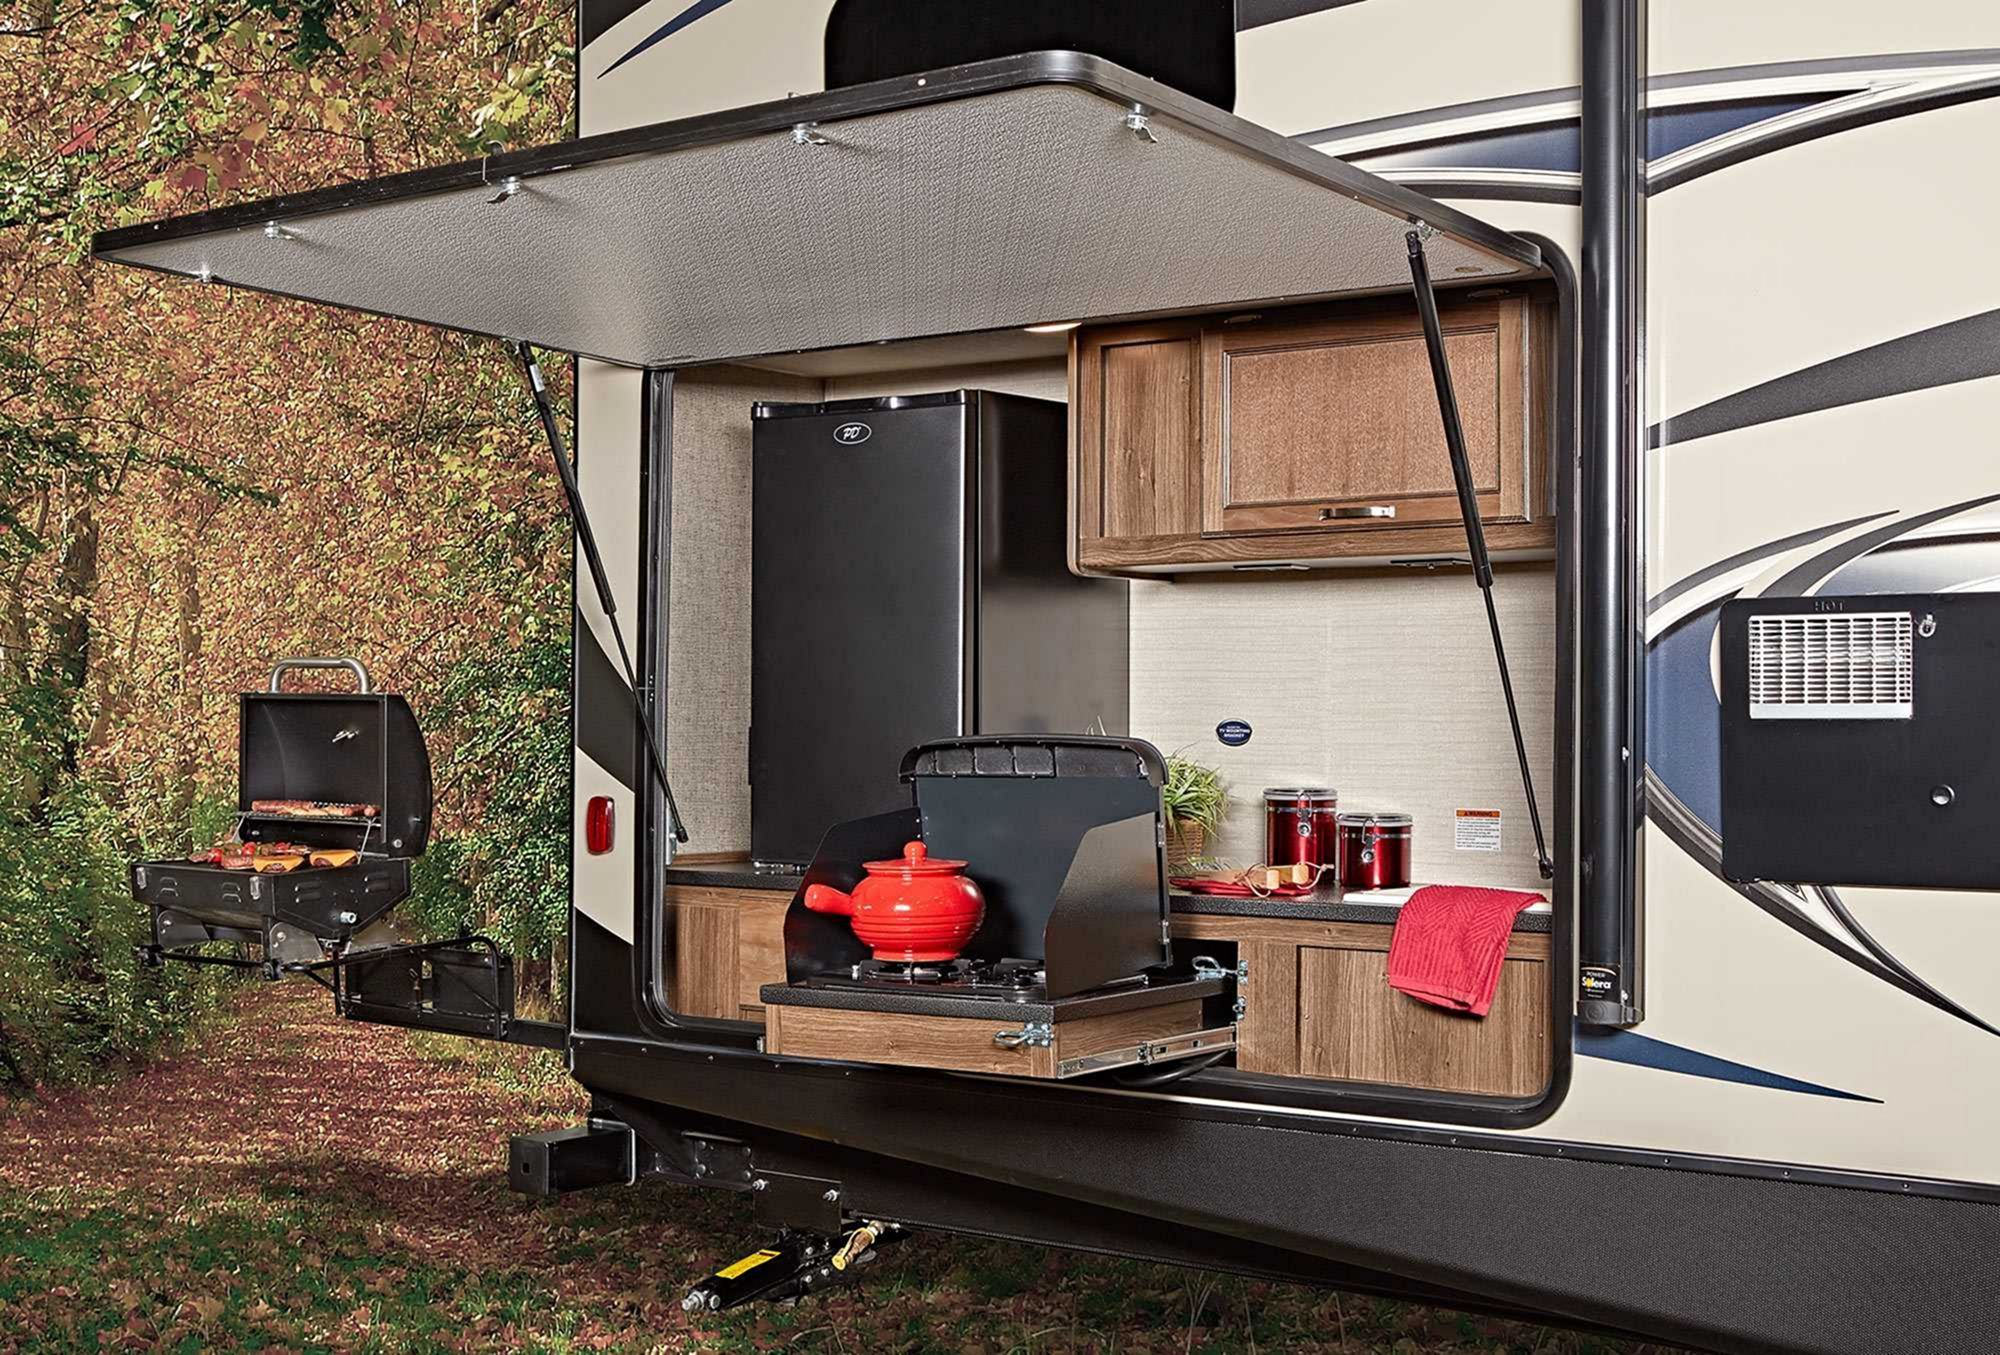 33 Comfortable Rv Camper Outdoor Kitchen Ideas For Cozy Outdoor Cooking Ideas Outdoor Kitchen Bunkhouse Travel Trailer Outdoor Cooking Spaces